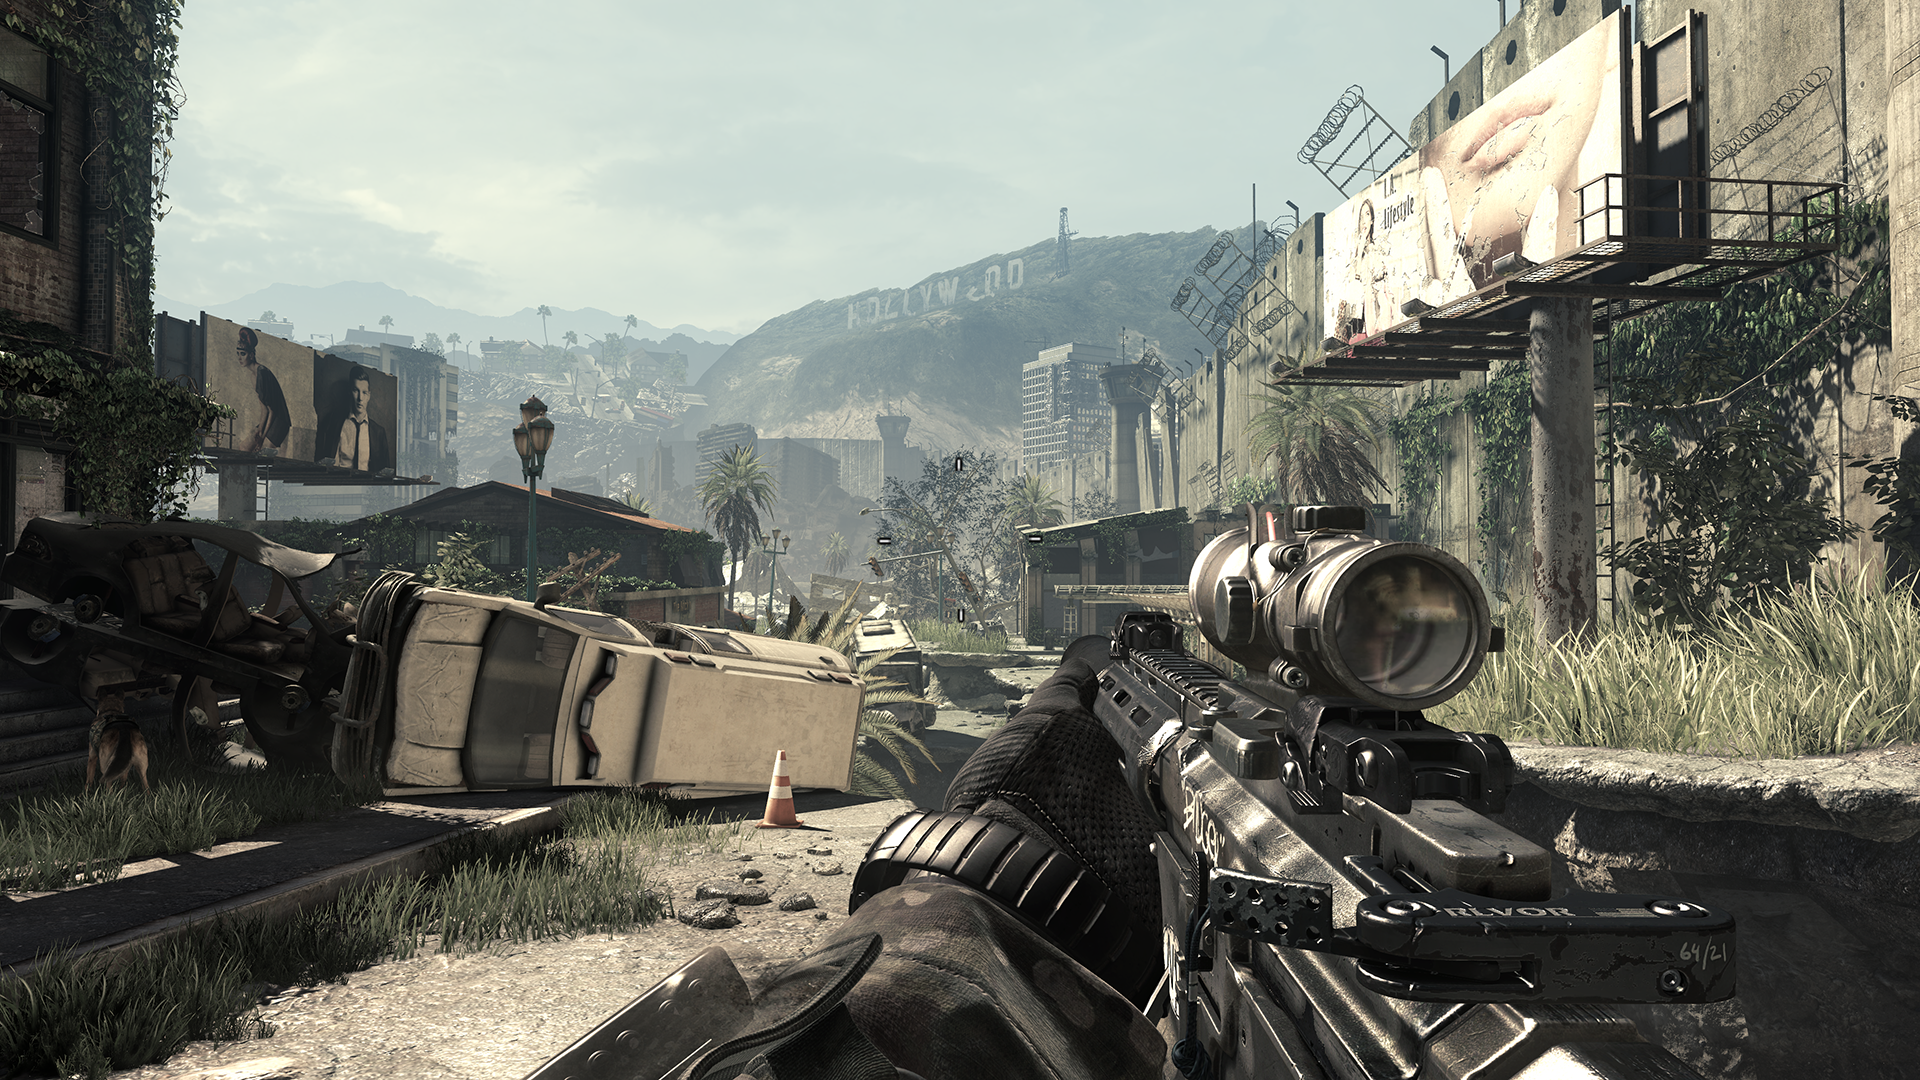 Call of Duty: Ghosts 1920x1080 PC Screenshot.